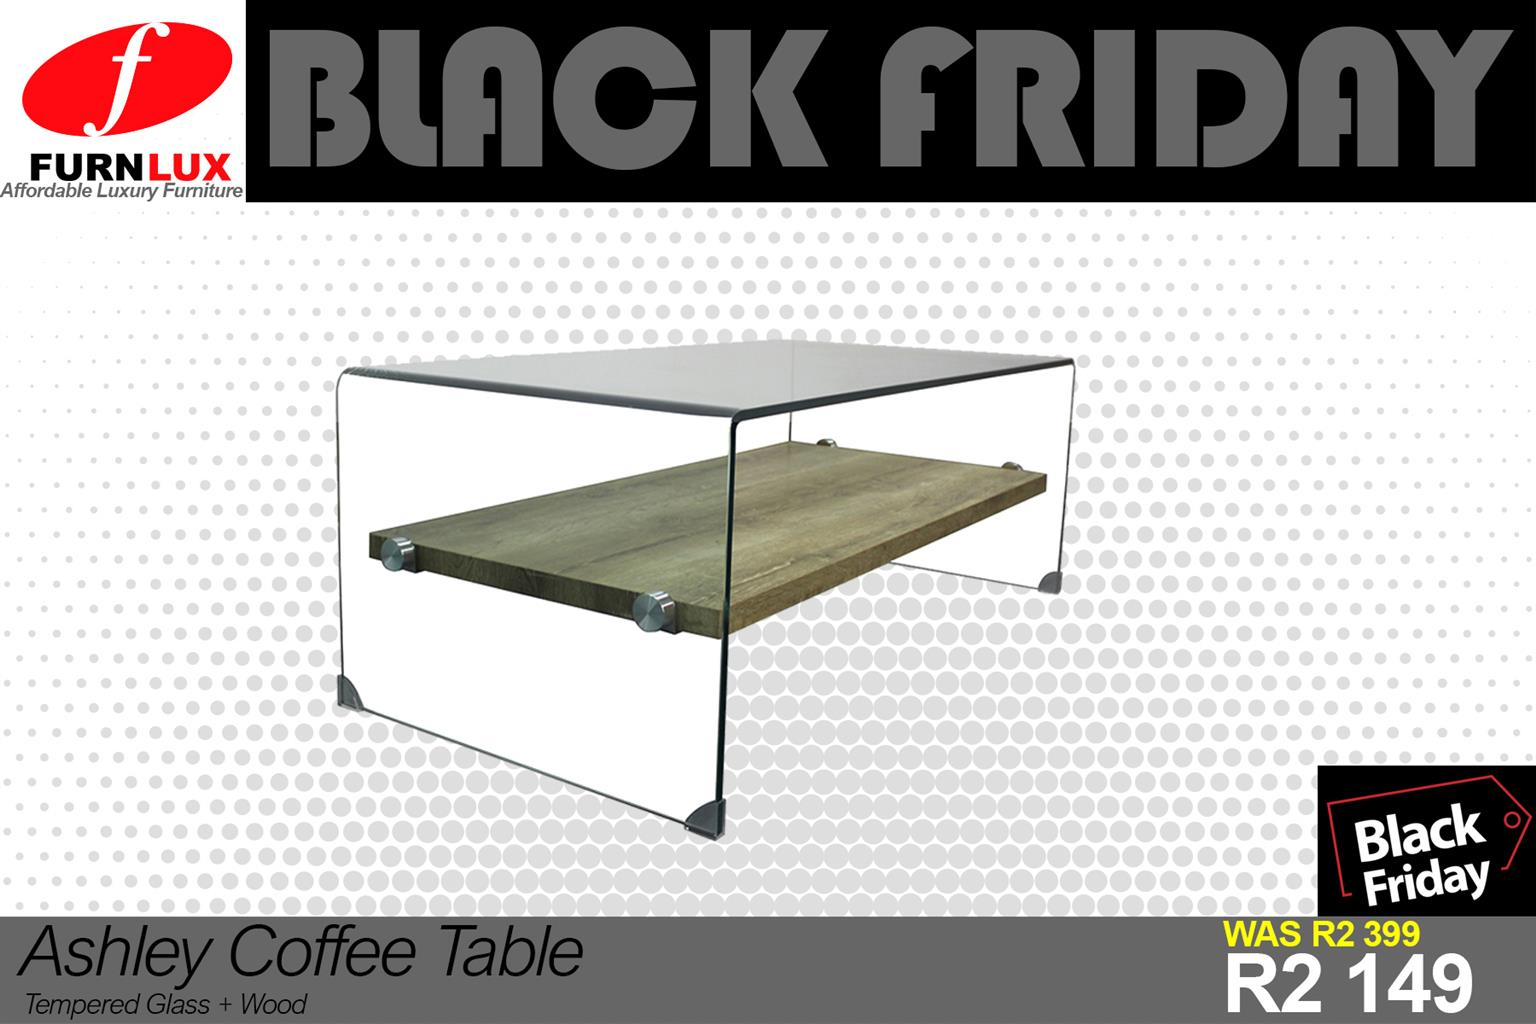 BLACK FRIDAY BRAND NEW ASHLEY COFFEE TABLE